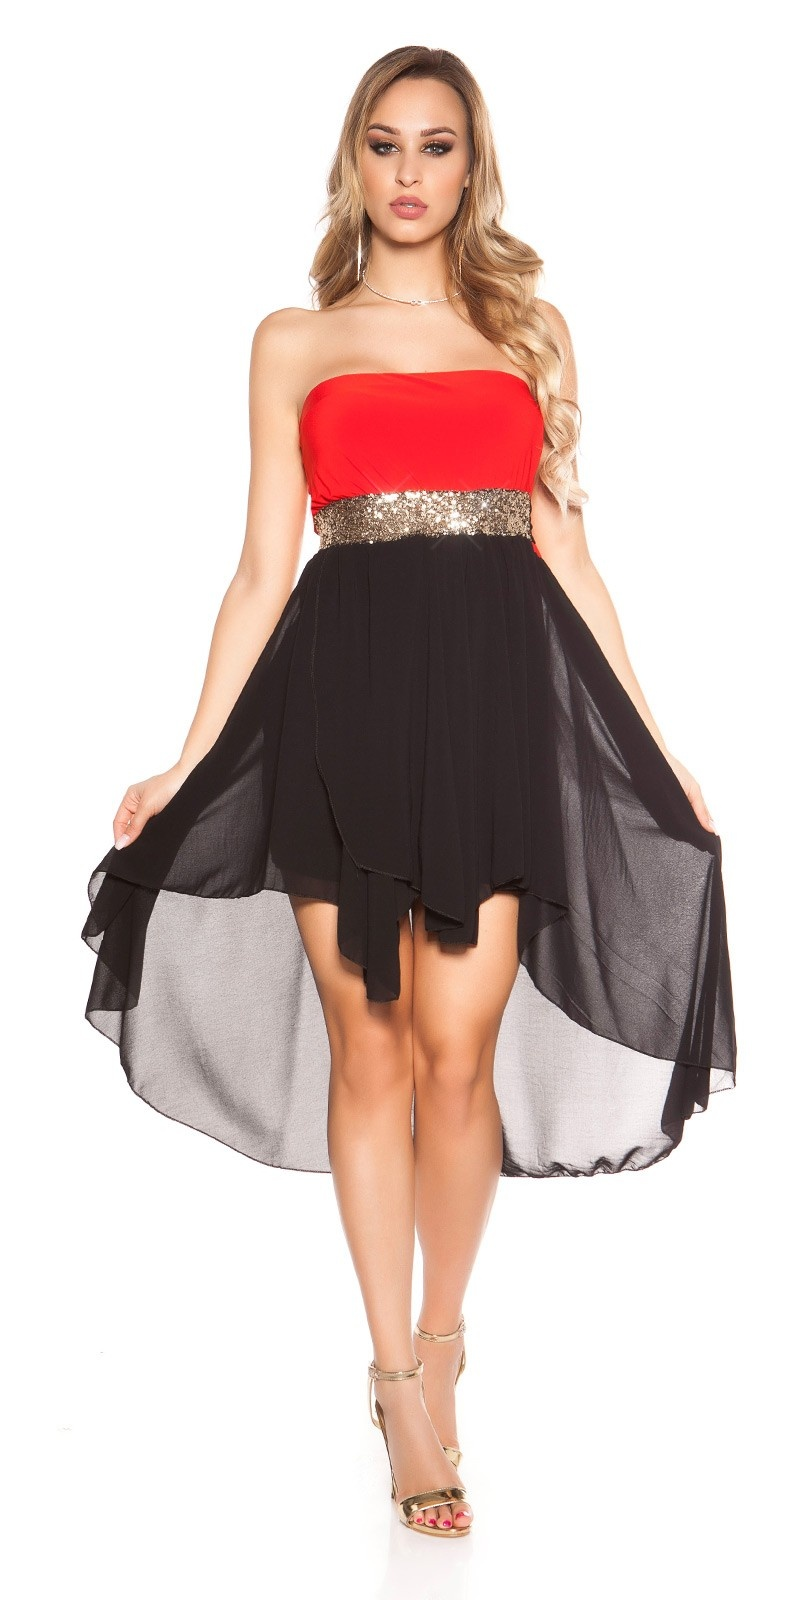 Sexy high-low dress with flounces Red